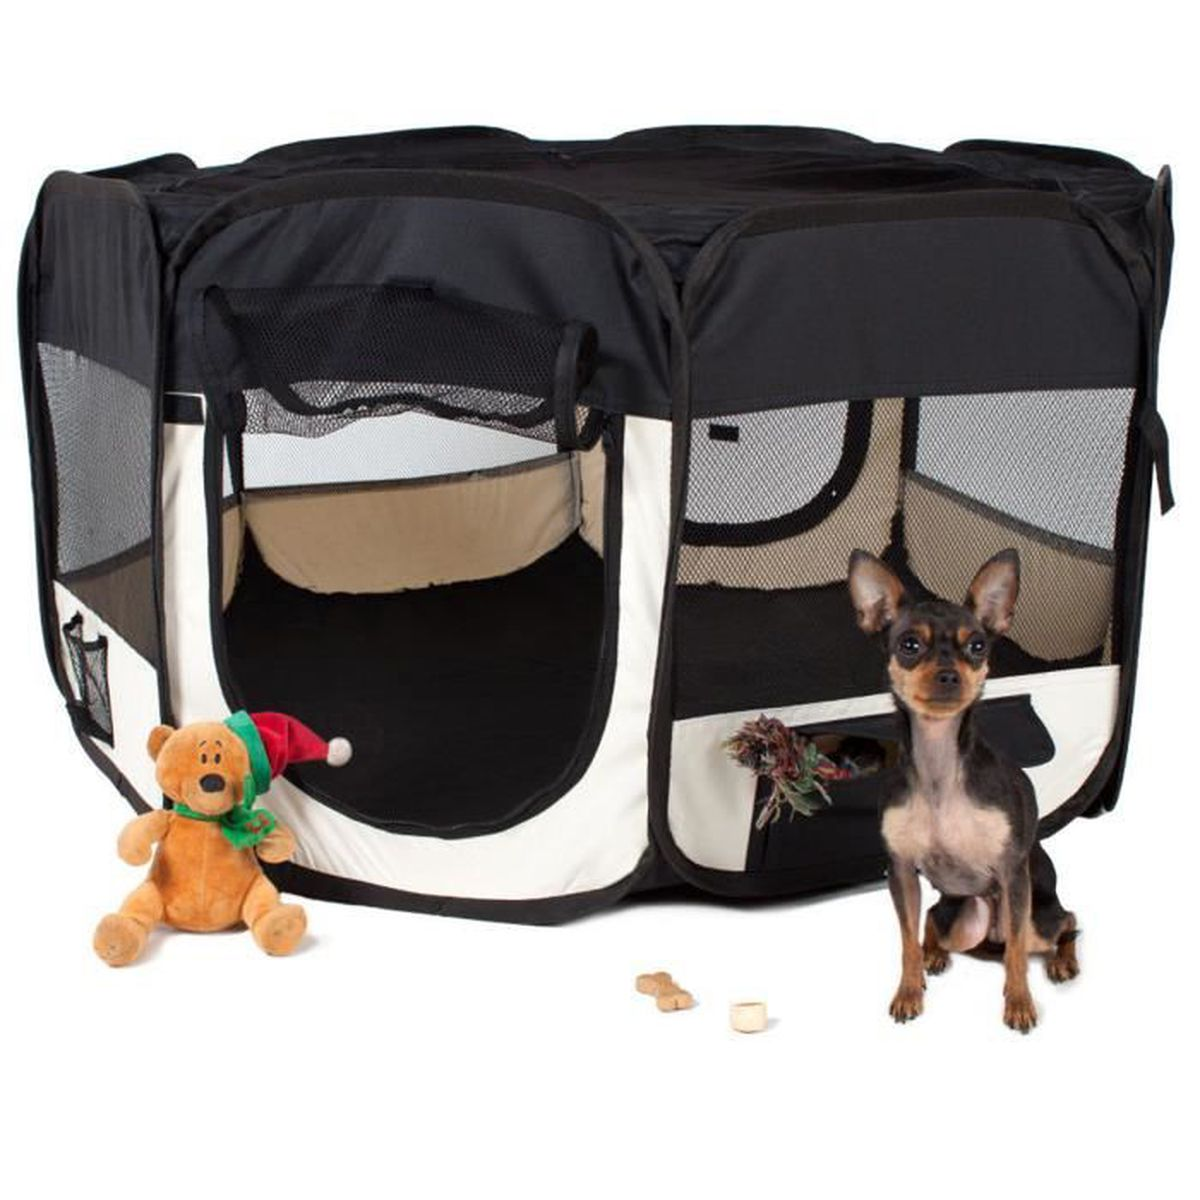 ENCLOS - CHENIL GOOD - Parc pliable à chiots chien chaton chat lap